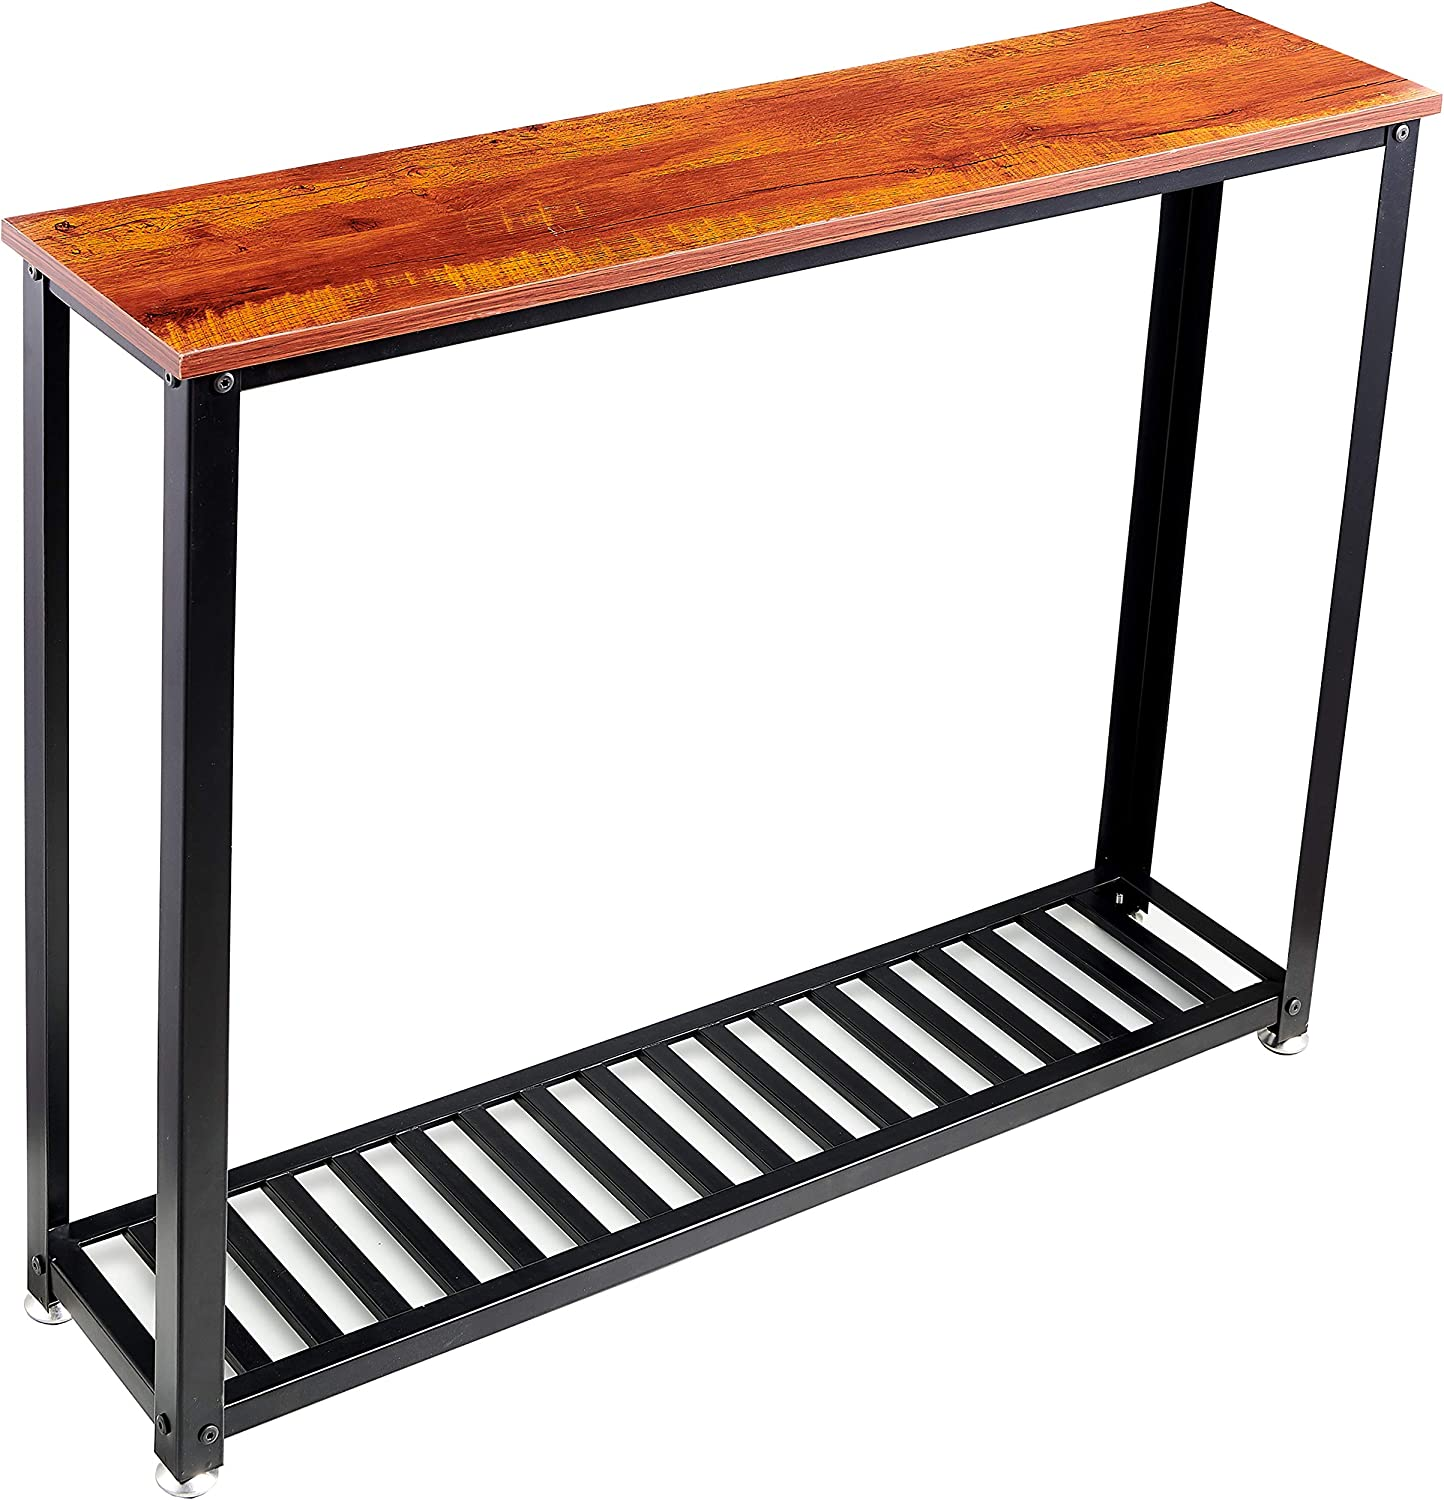 Loglus Sofa Table/Console Table with Metal Shelf for Living Room, Office, Easy Assembly